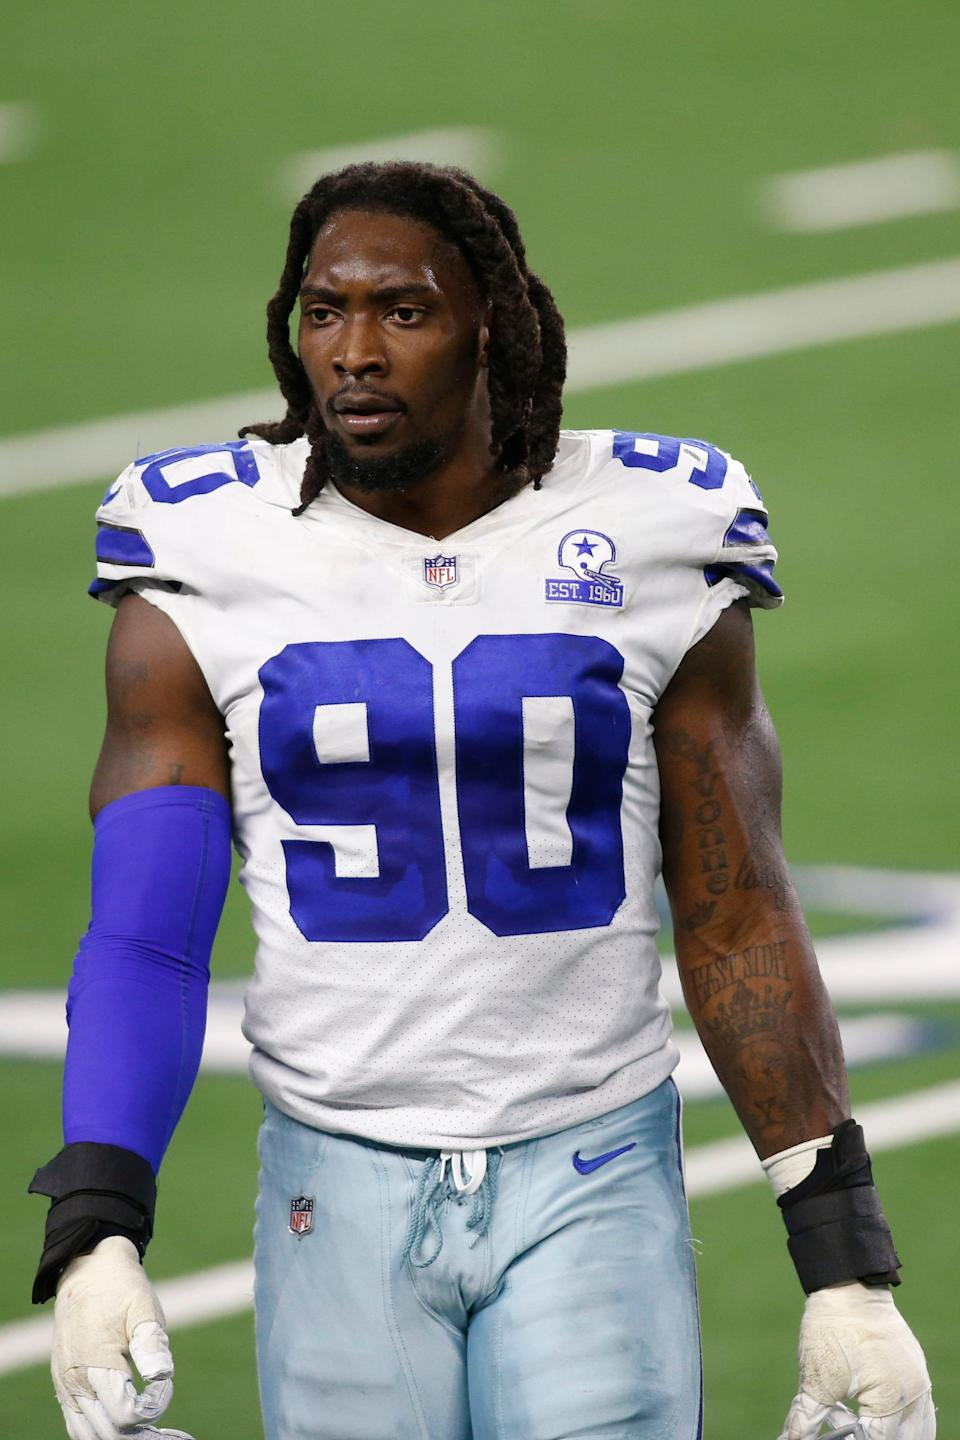 DeMarcus Lawrence is in his eighth season with the Cowboys, and has registered 45.5 career sacks.